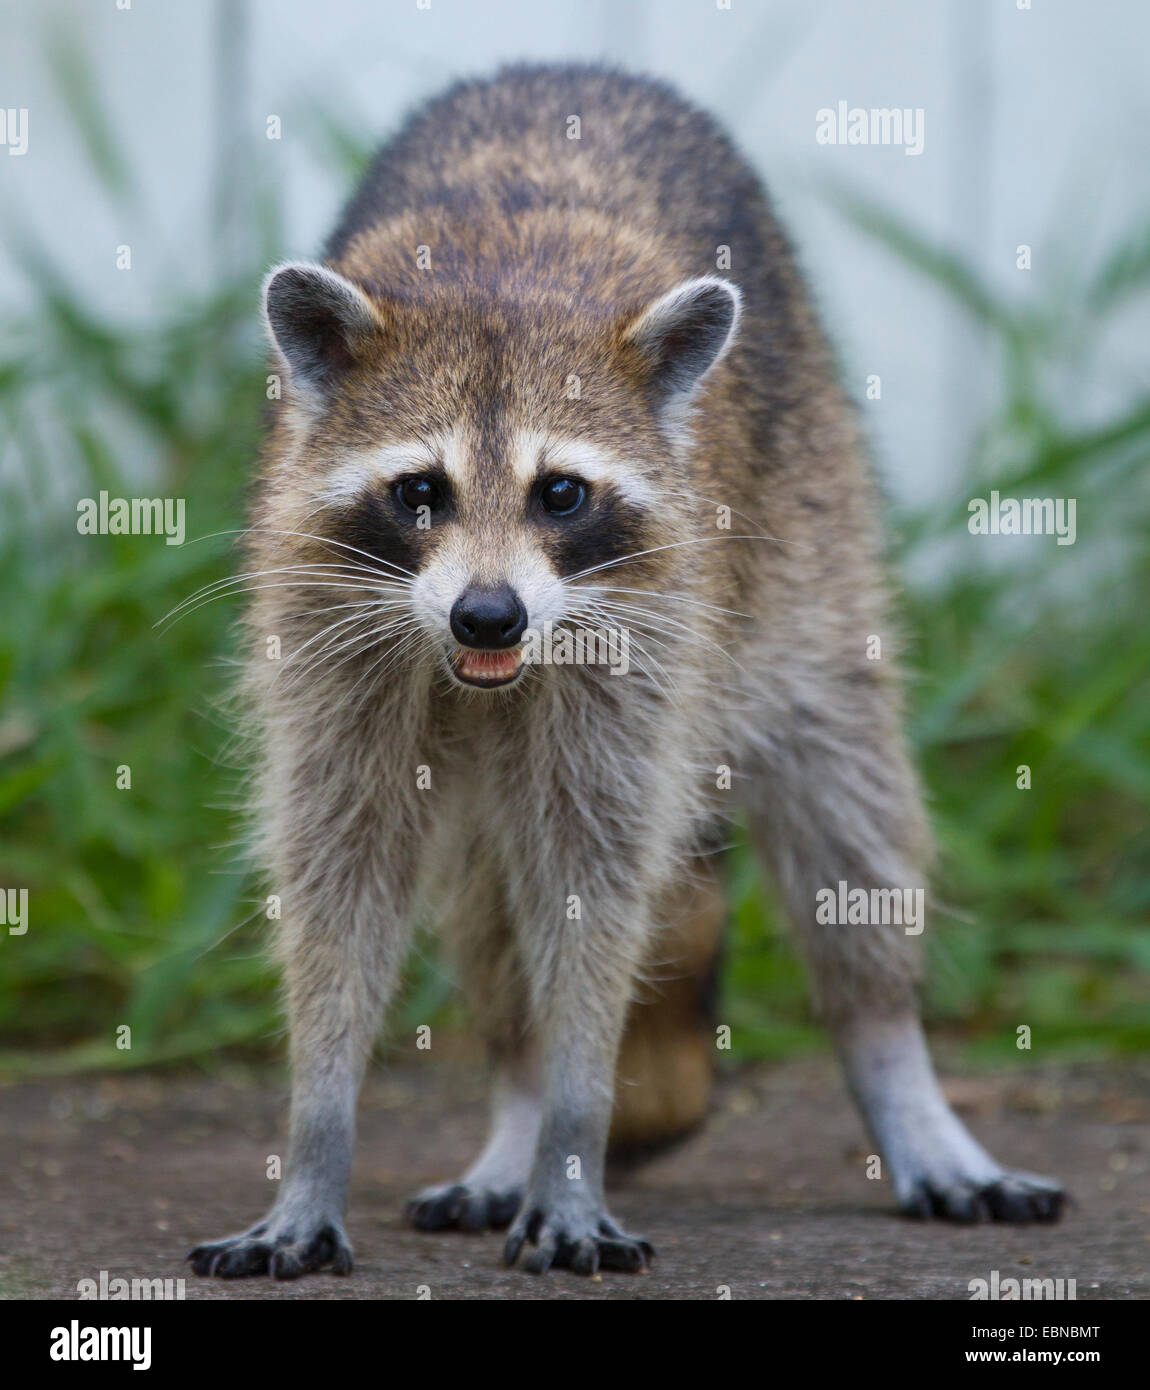 RACCOON (Procyon Lotor) Female In A Backyard, Fort Myers, Florida, USA